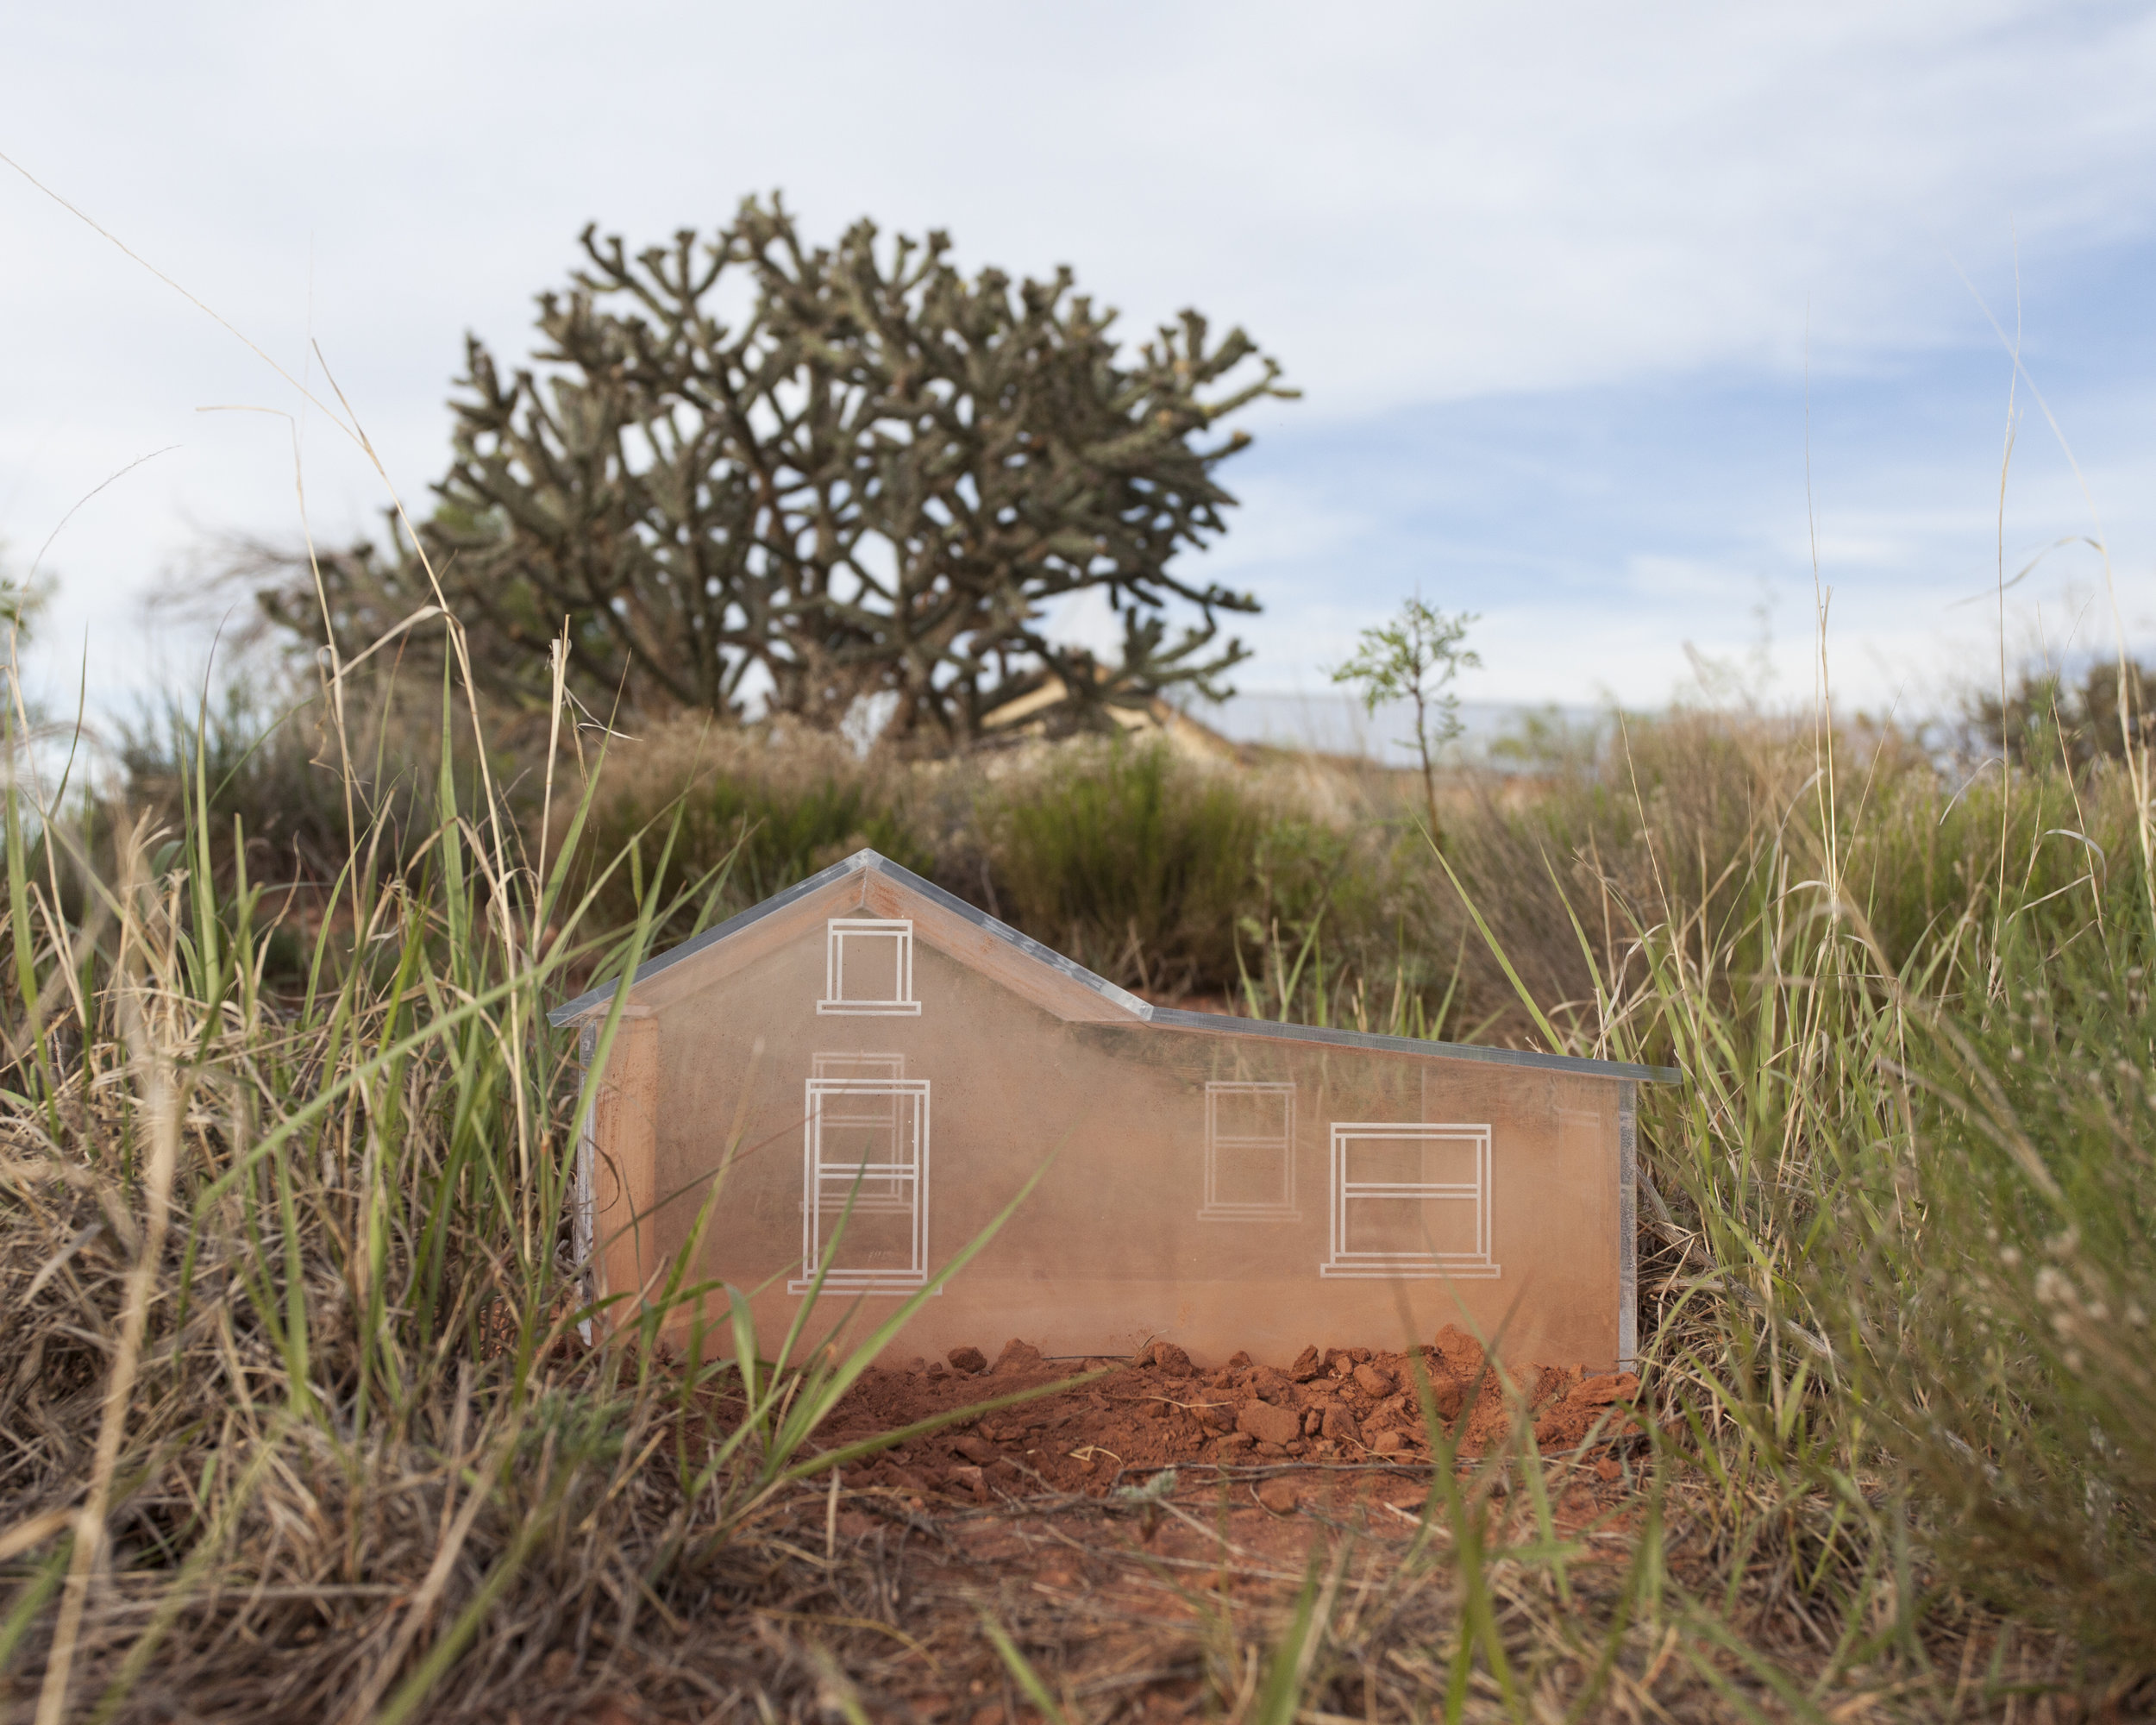 Vessel I Installed - Cuervo, New Mexico